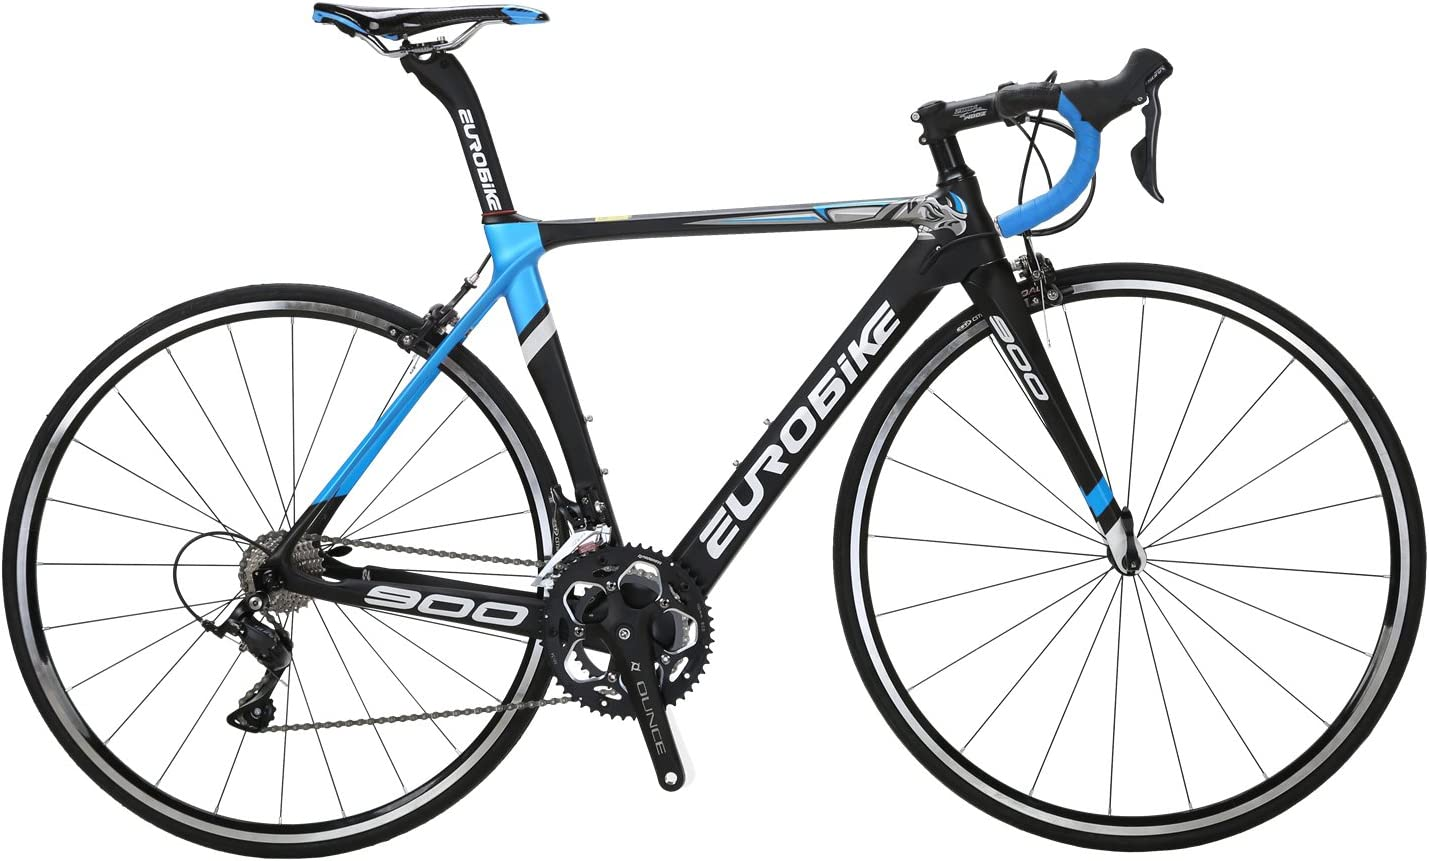 Eurobike EUR900 50CM Carbon Frame Road Bike 18 Speed 700C Racing Bicycle